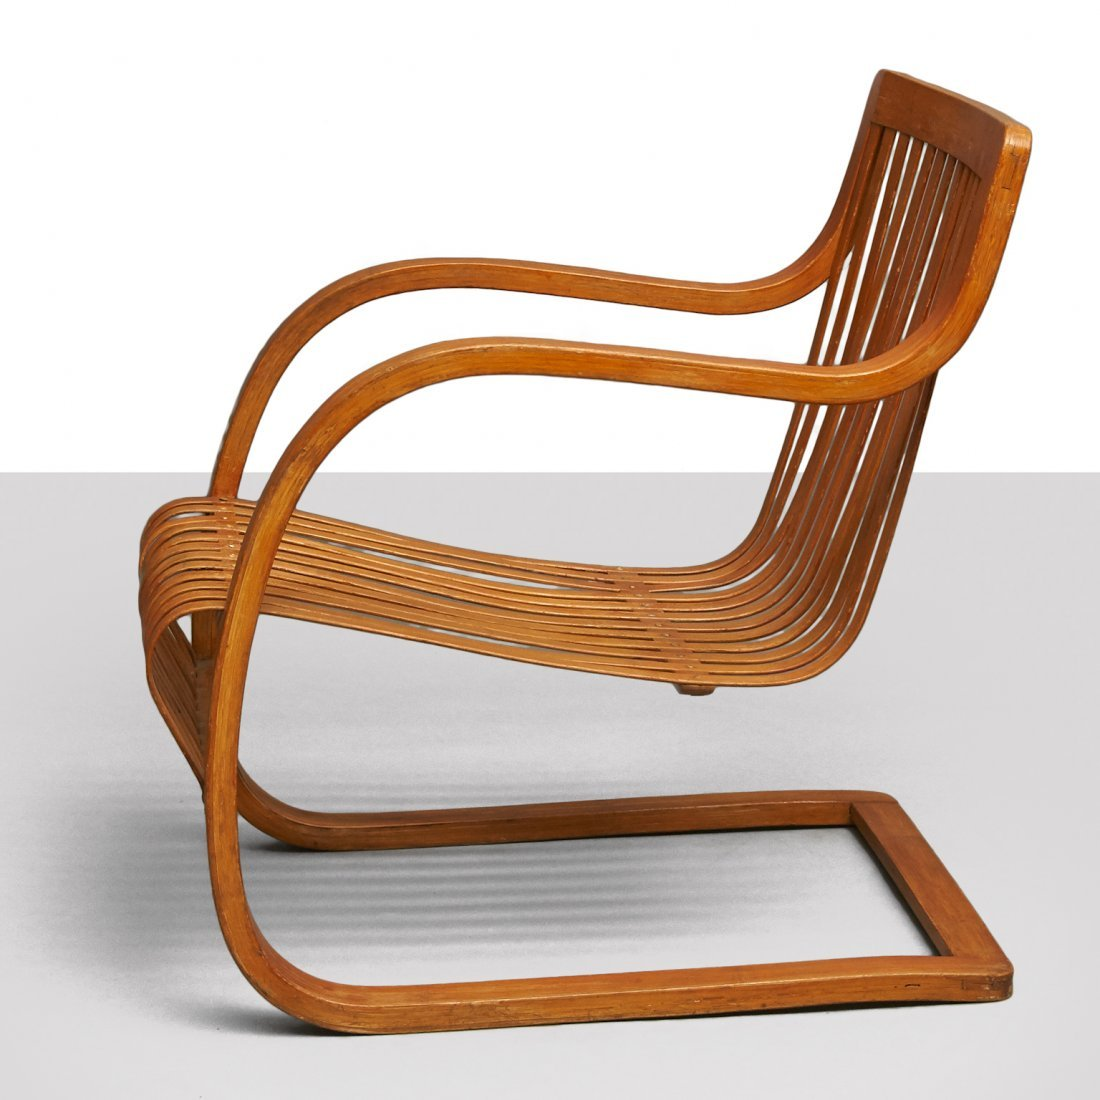 Charlotte Perriand, Lounge Chairs - 3